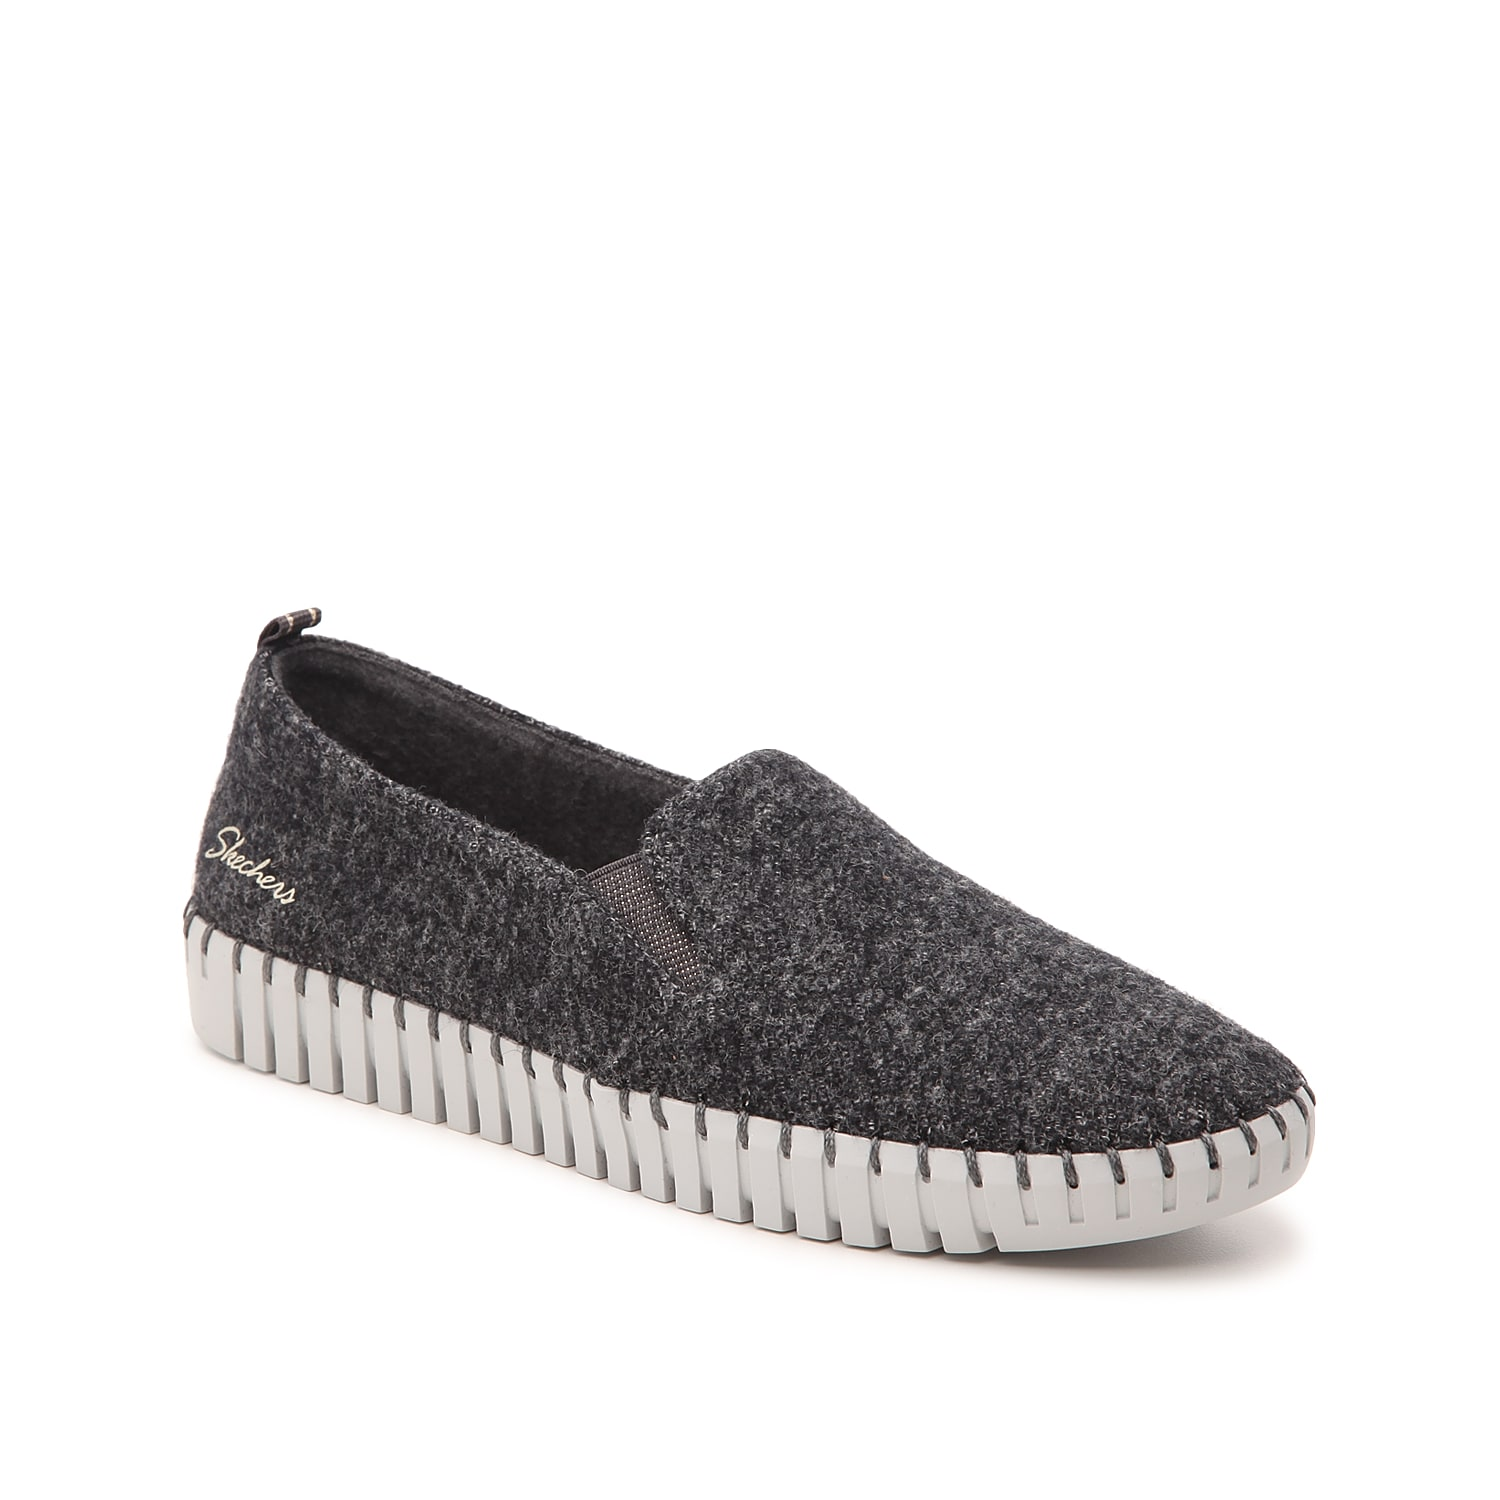 Go anywhere in comfortable style with the Sepulveda Blvd Mindfulness slip-on from Skechers! This pair features washable wool and a plush Air-Cooled Goga Mat® for plush stepping.